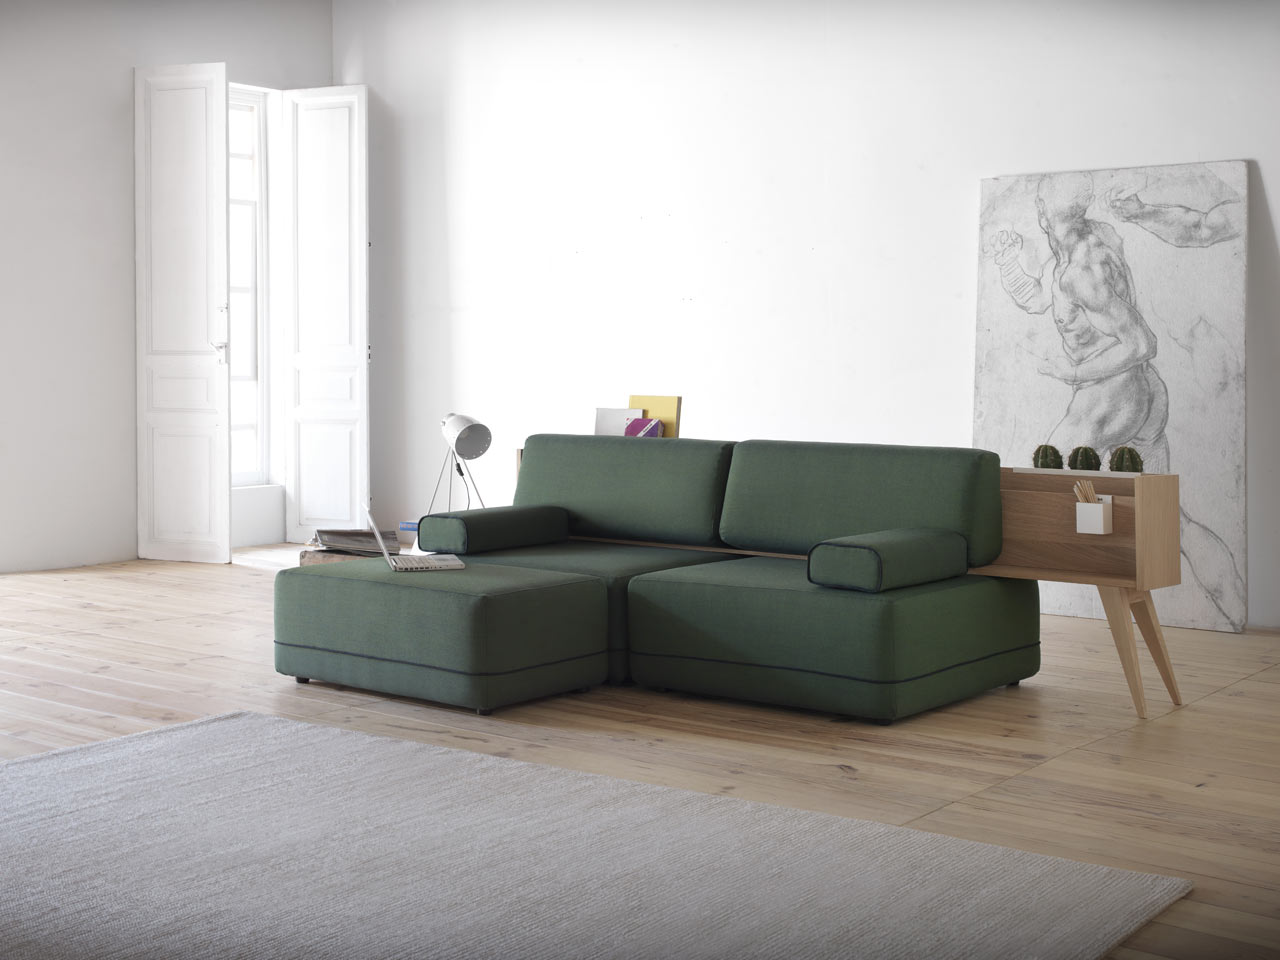 Two Be: A Hybrid Between a Sofa and Occasional Furniture